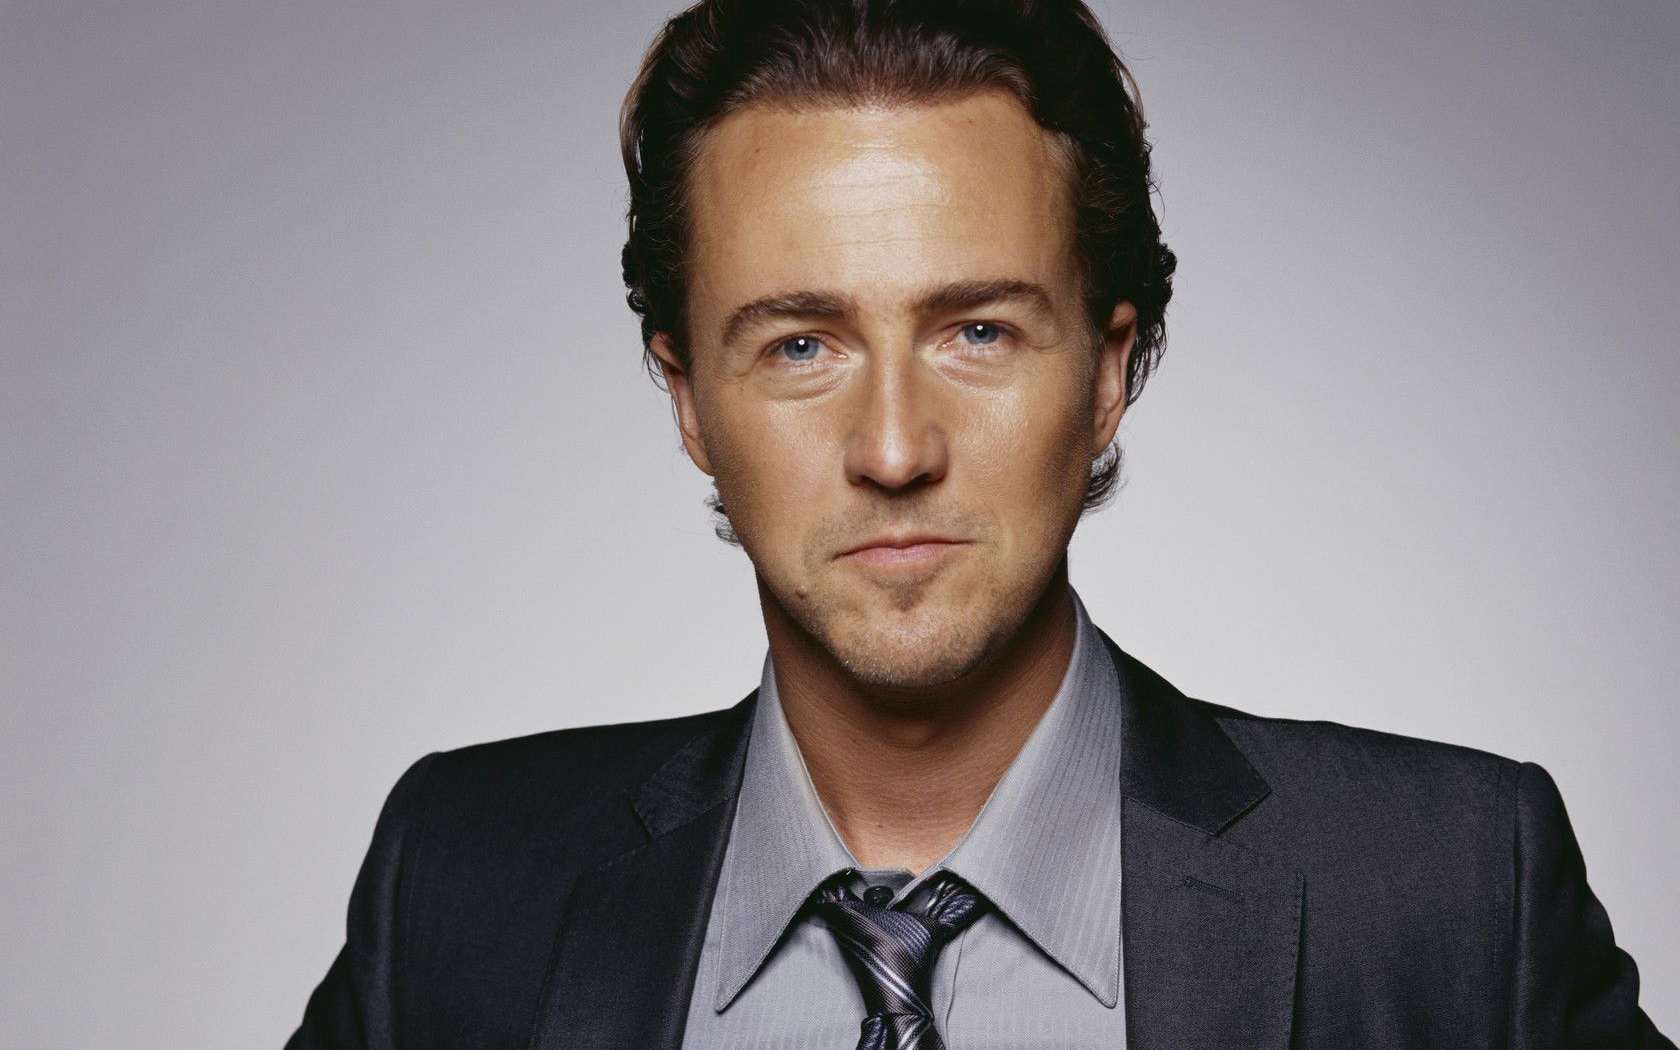 Edward Norton Wallpaper 25   1680 X 1050 stmednet 1680x1050